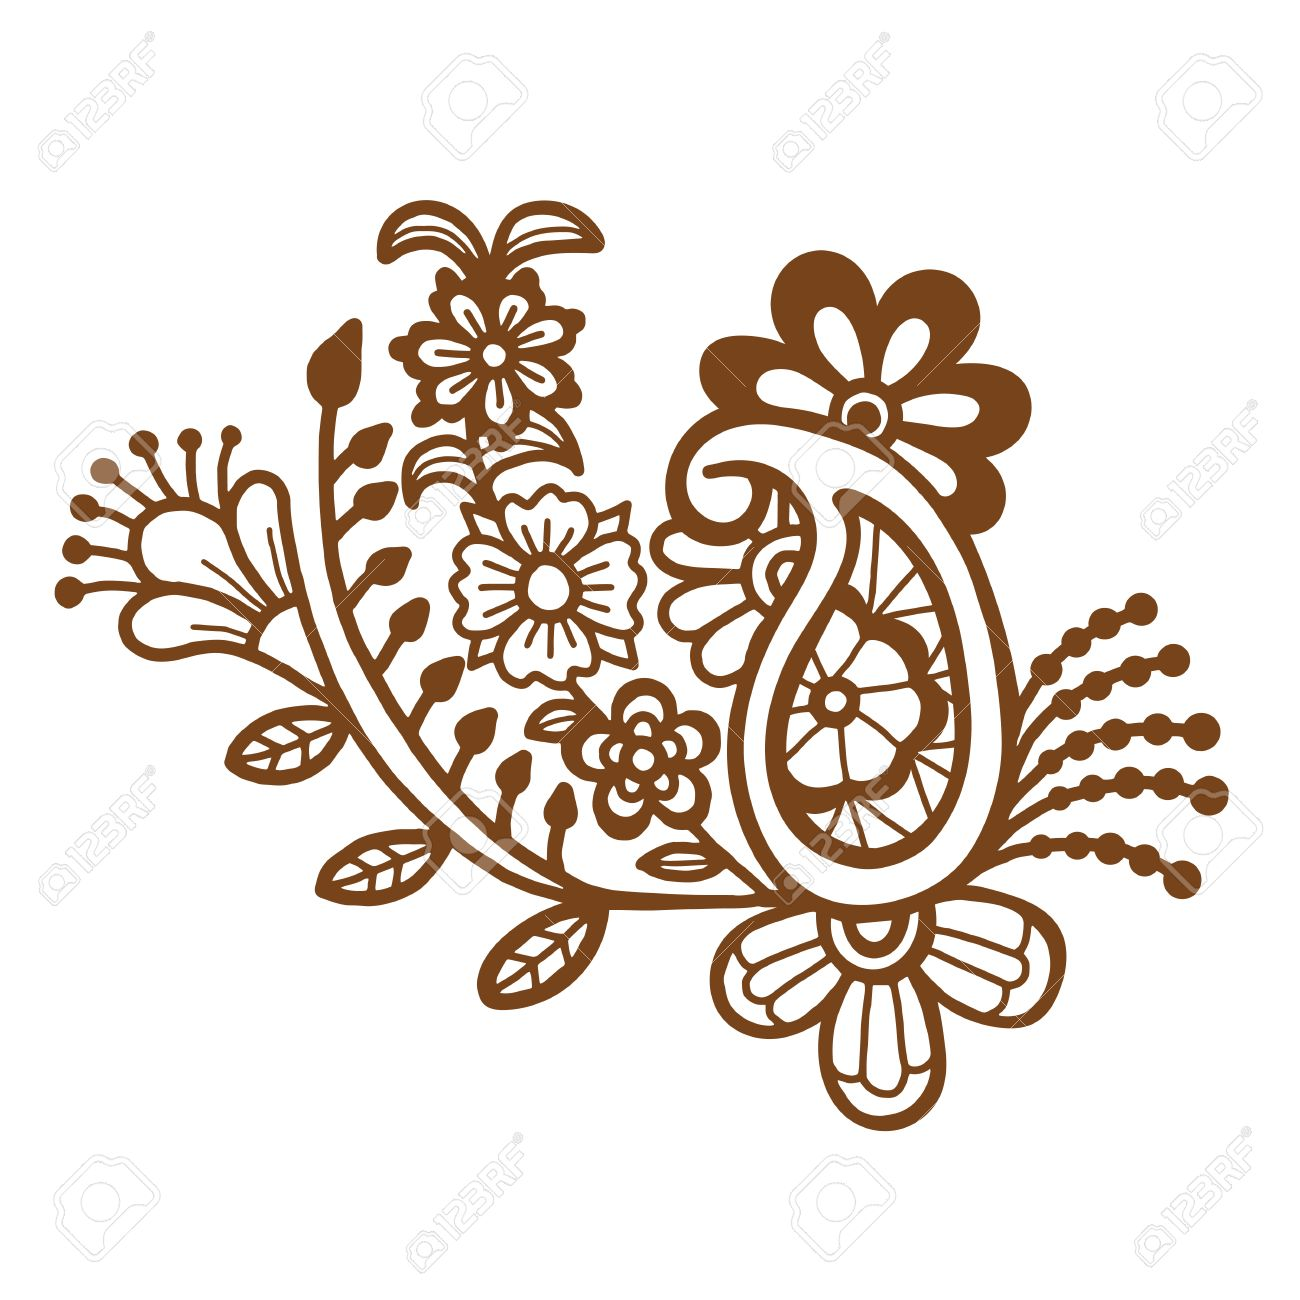 Mehndi Design Floral Abstract Pattern Vector Illustration Royalty